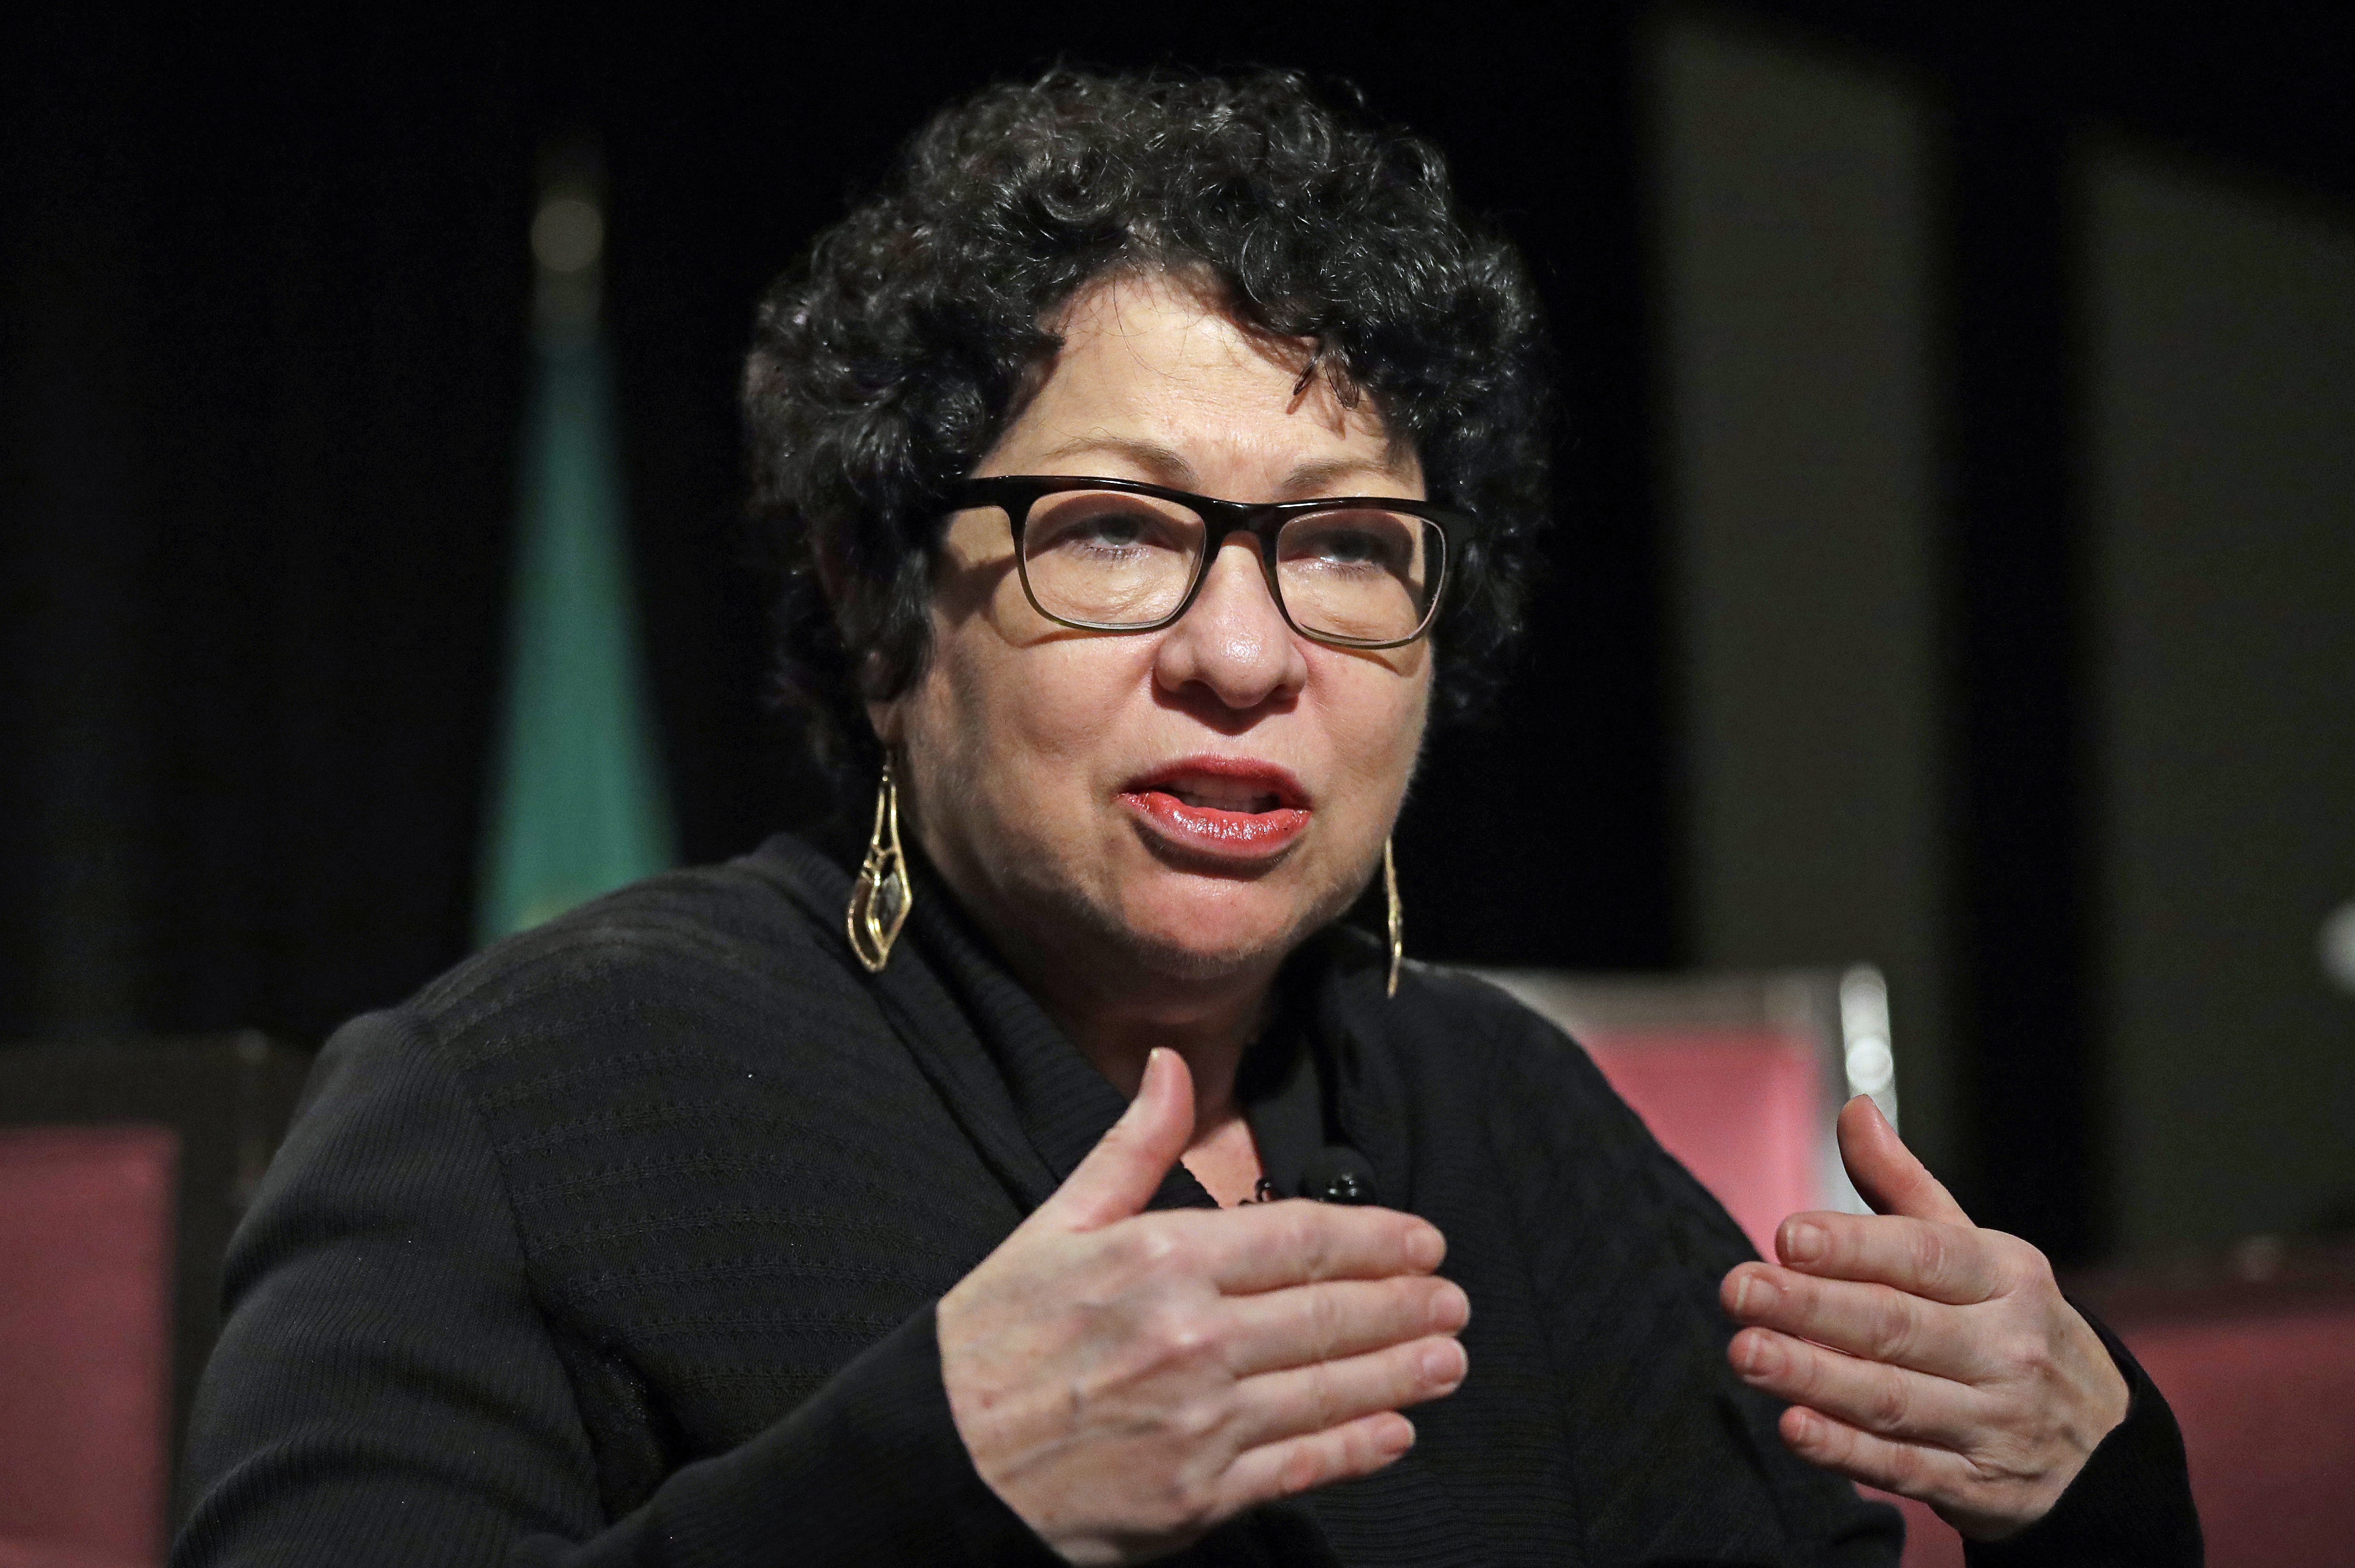 Supreme Court Justice Sonia Sotomayor speaks at a civics event in January in Seattle.